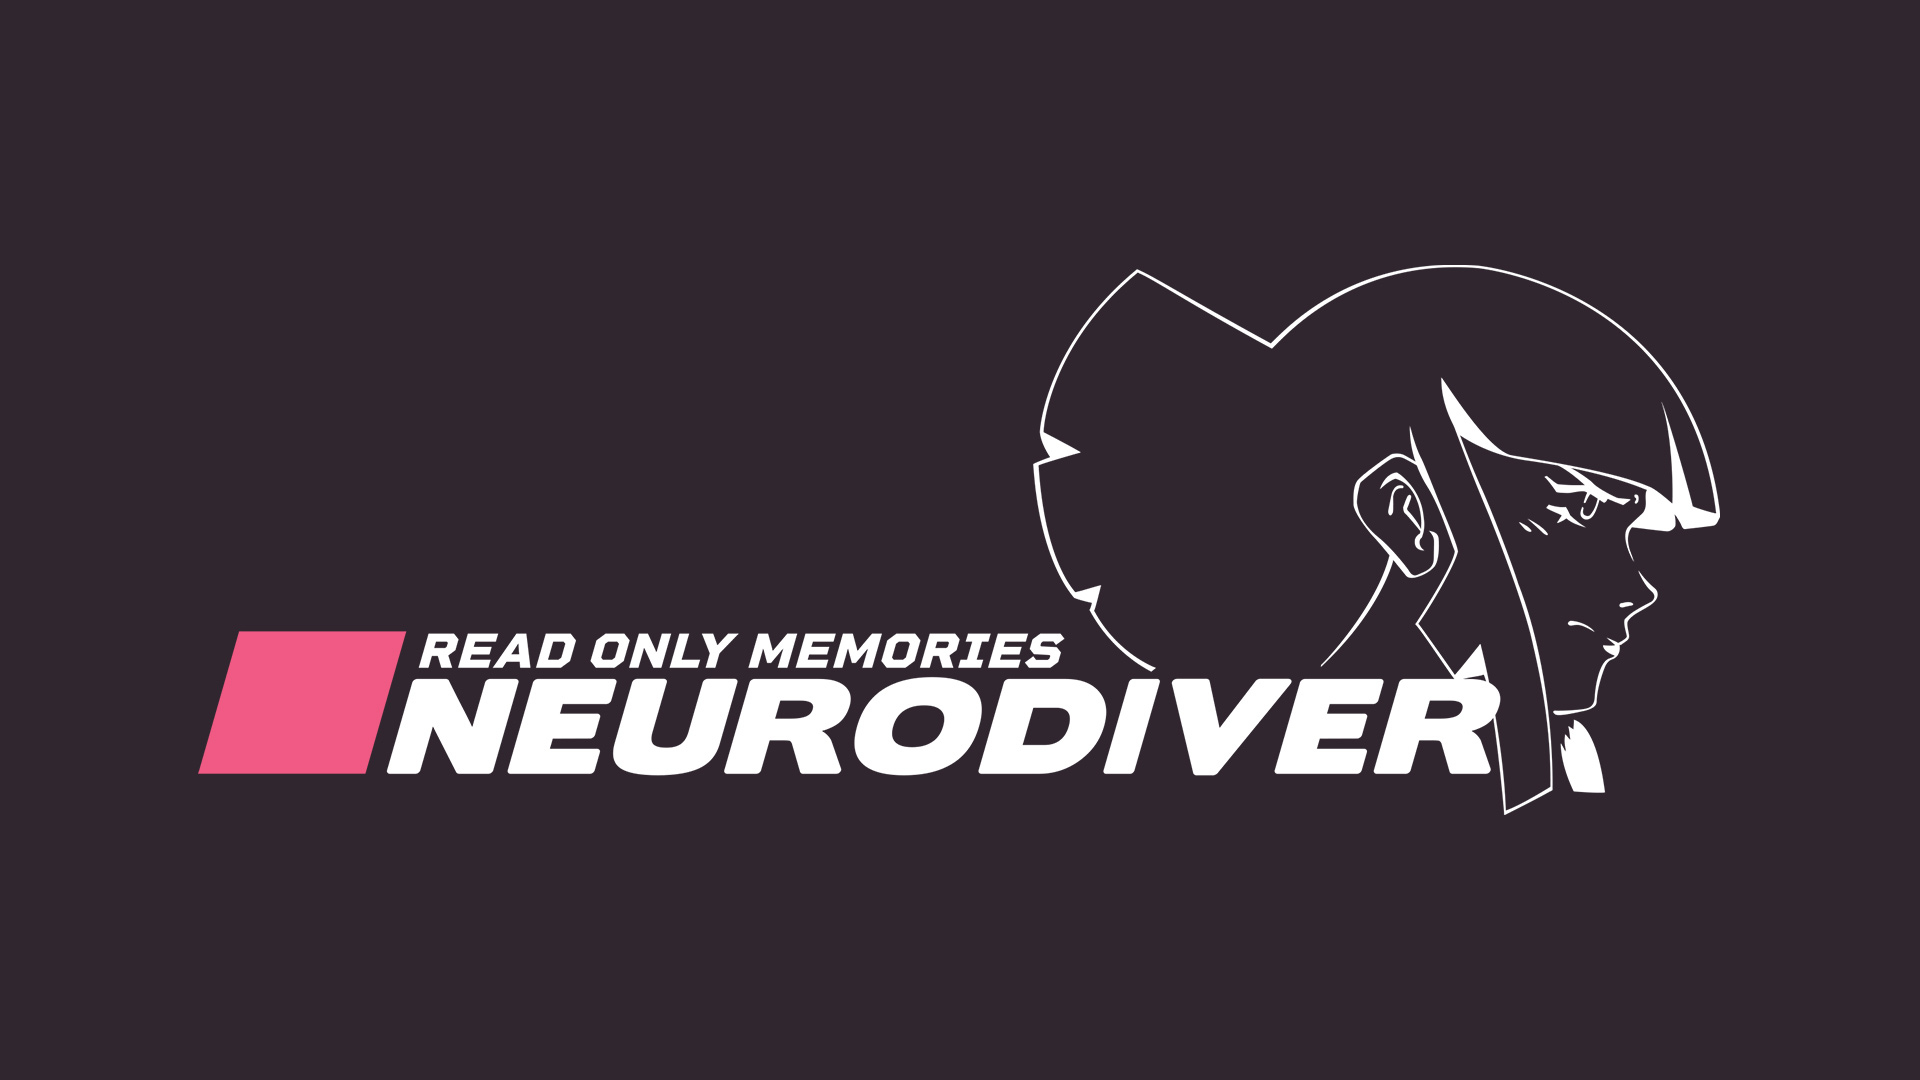 Read Only Memories: NEURODIVER logo with main character illustration.